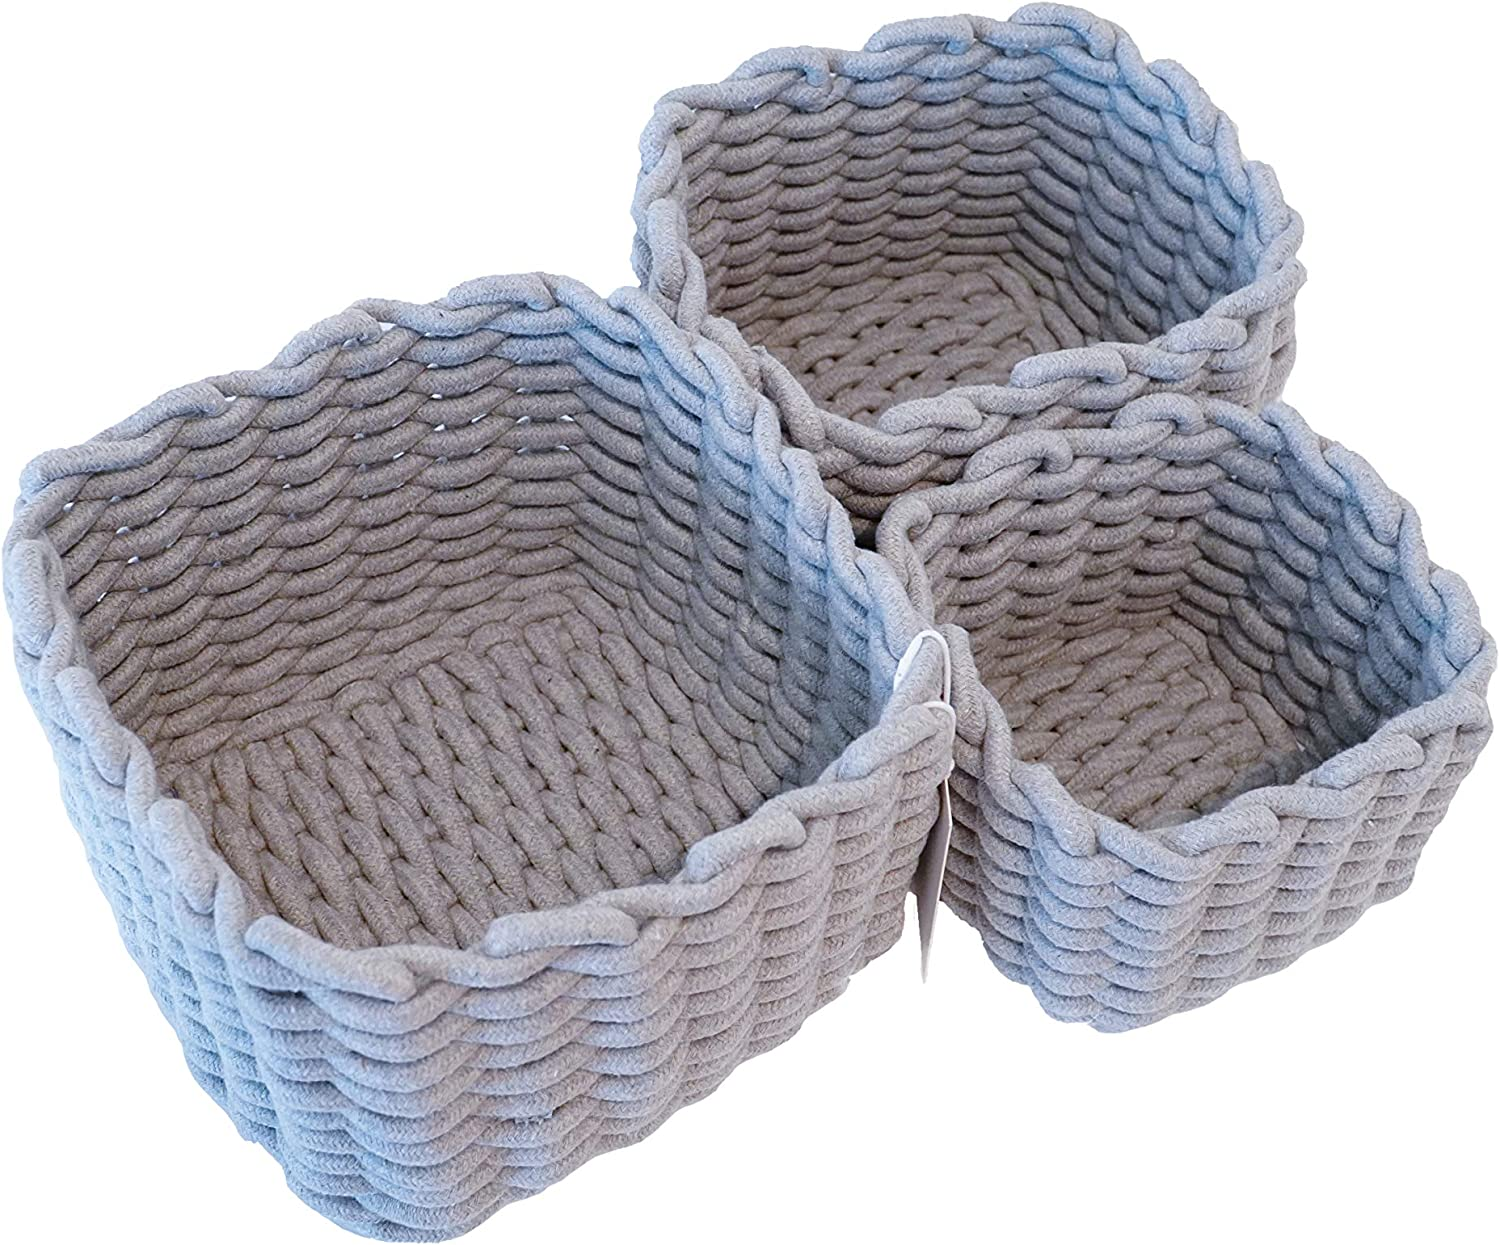 GOLDEN Philadelphia Mall CACTUS Set of 3 Cotton Sma Woven Storage for Baskets Fixed price sale Rope